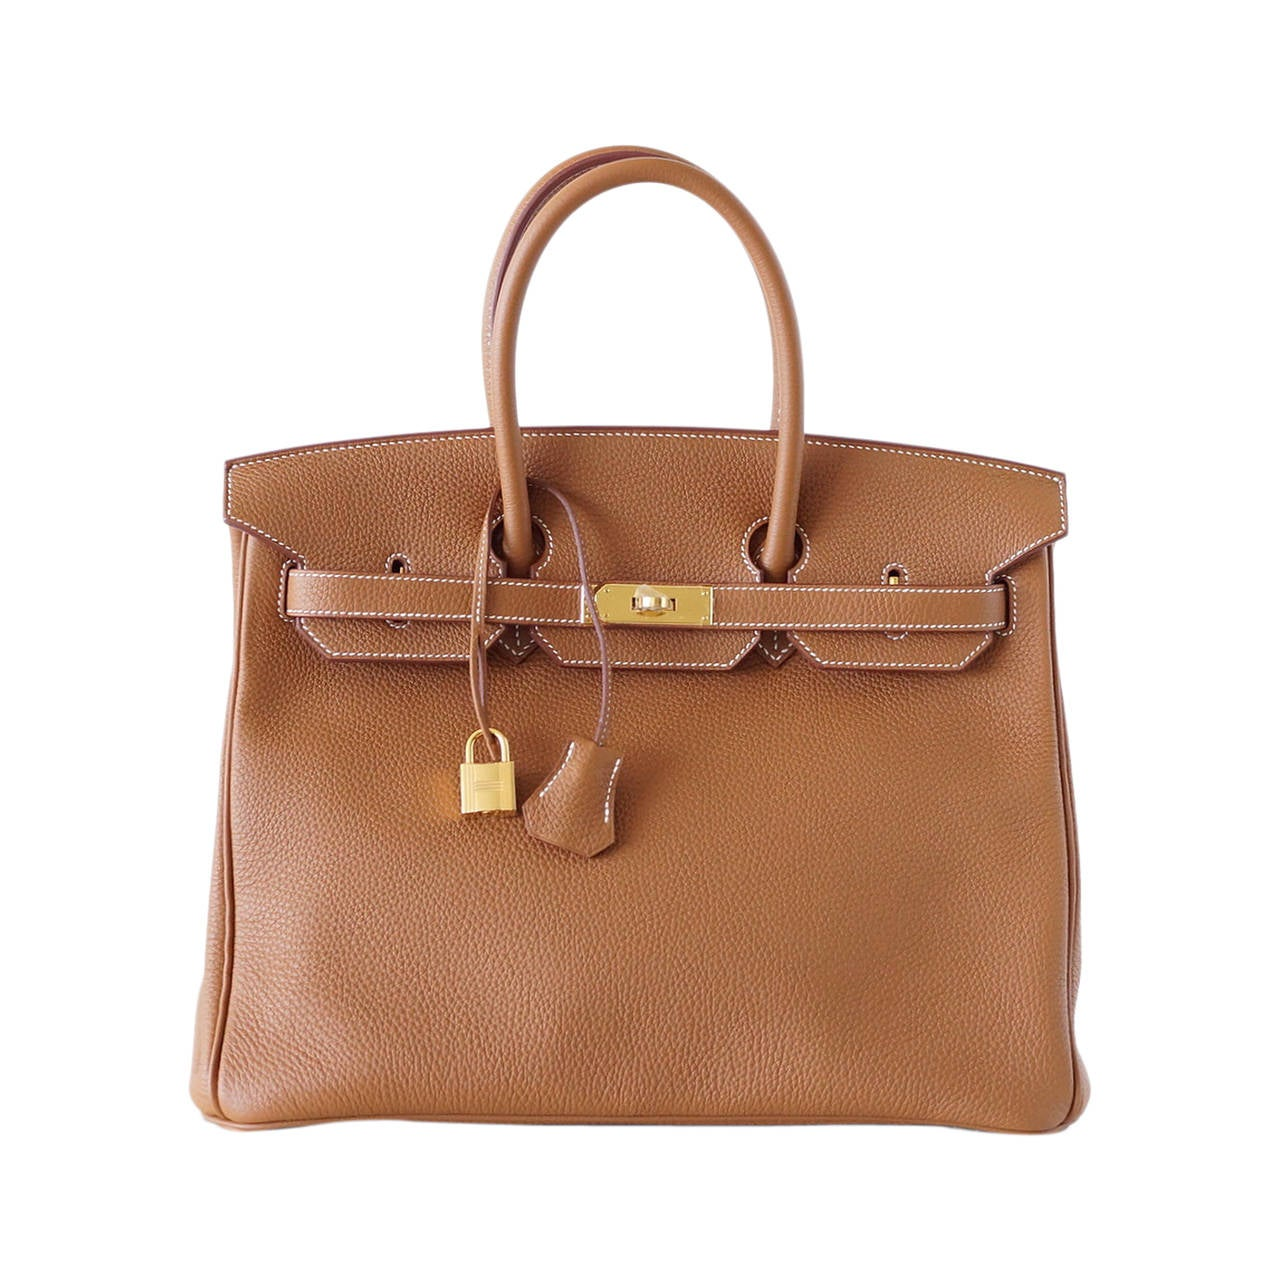 Hermes Birkin 35 Bag Coveted Gold Togo Gold Hardware Iconic Classic For Sale